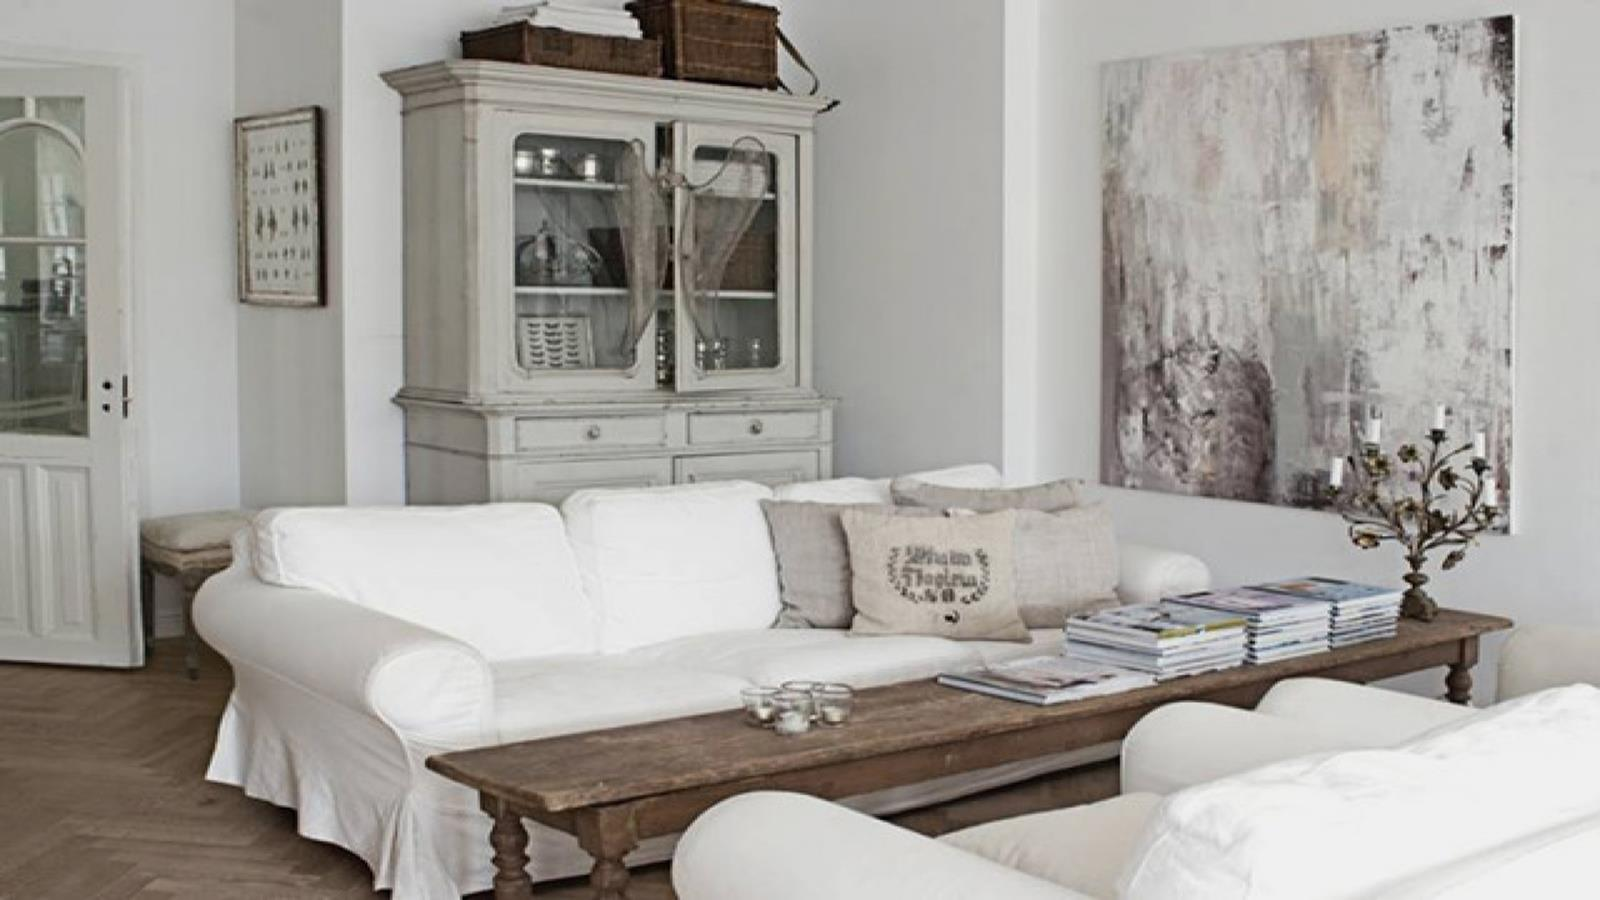 City Chic Living Room Decorating Ideas On a Budget 30